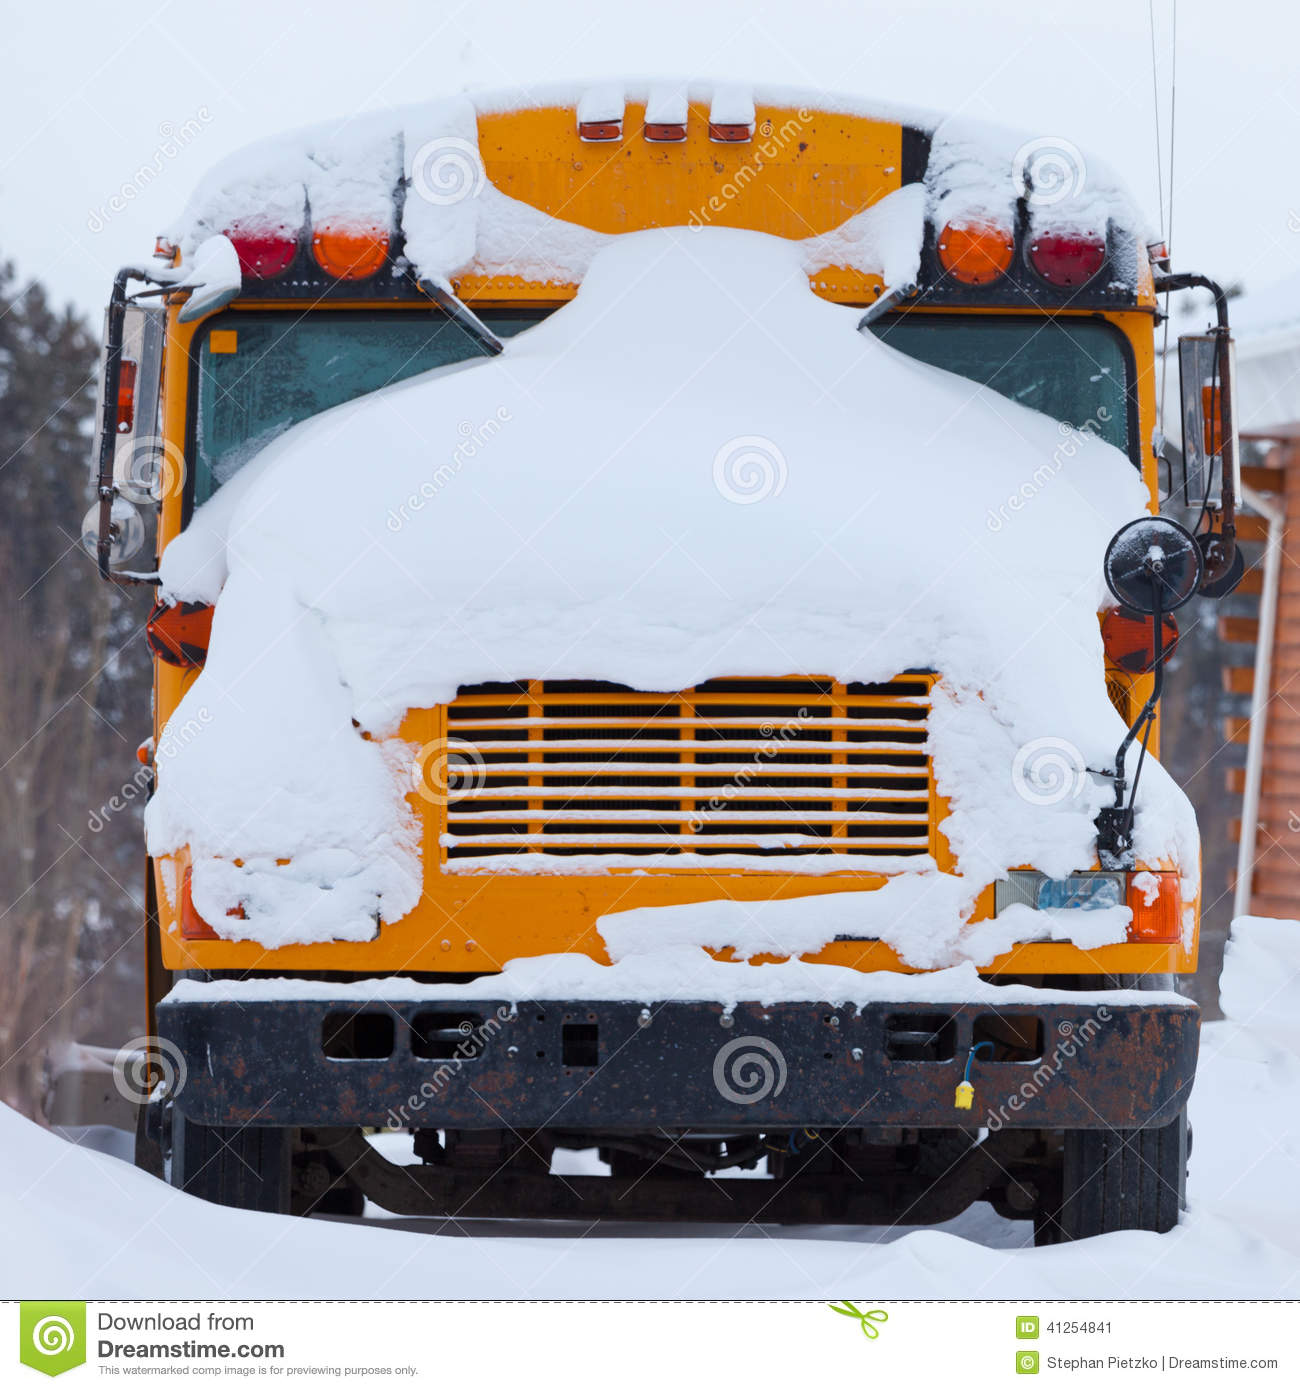 Parked School Bus Winter Blizzard Snow Cover Stock Photo.